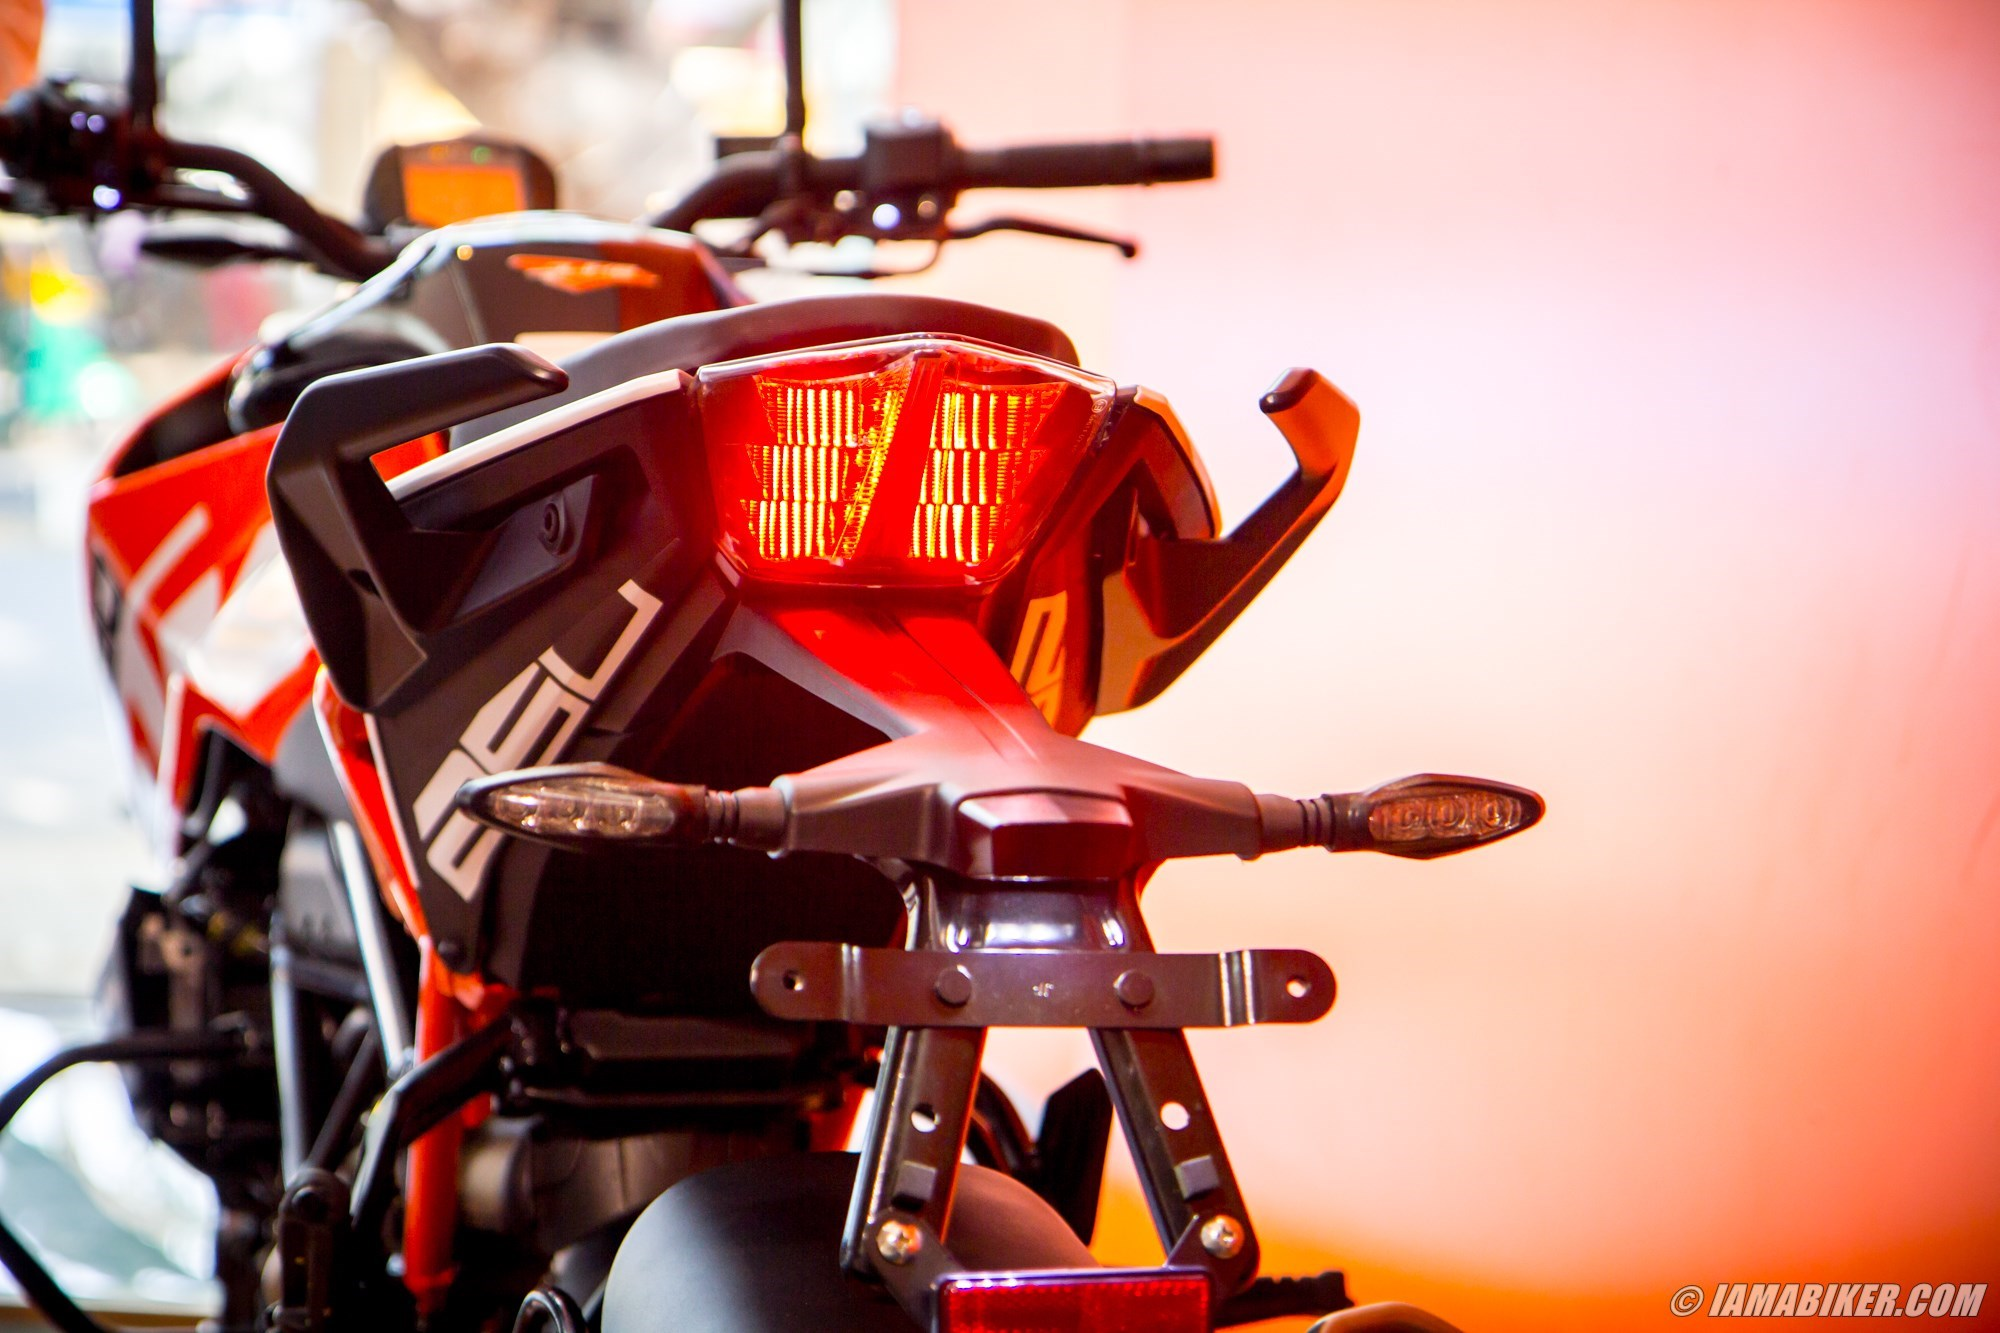 KTM Duke 250 image gallery